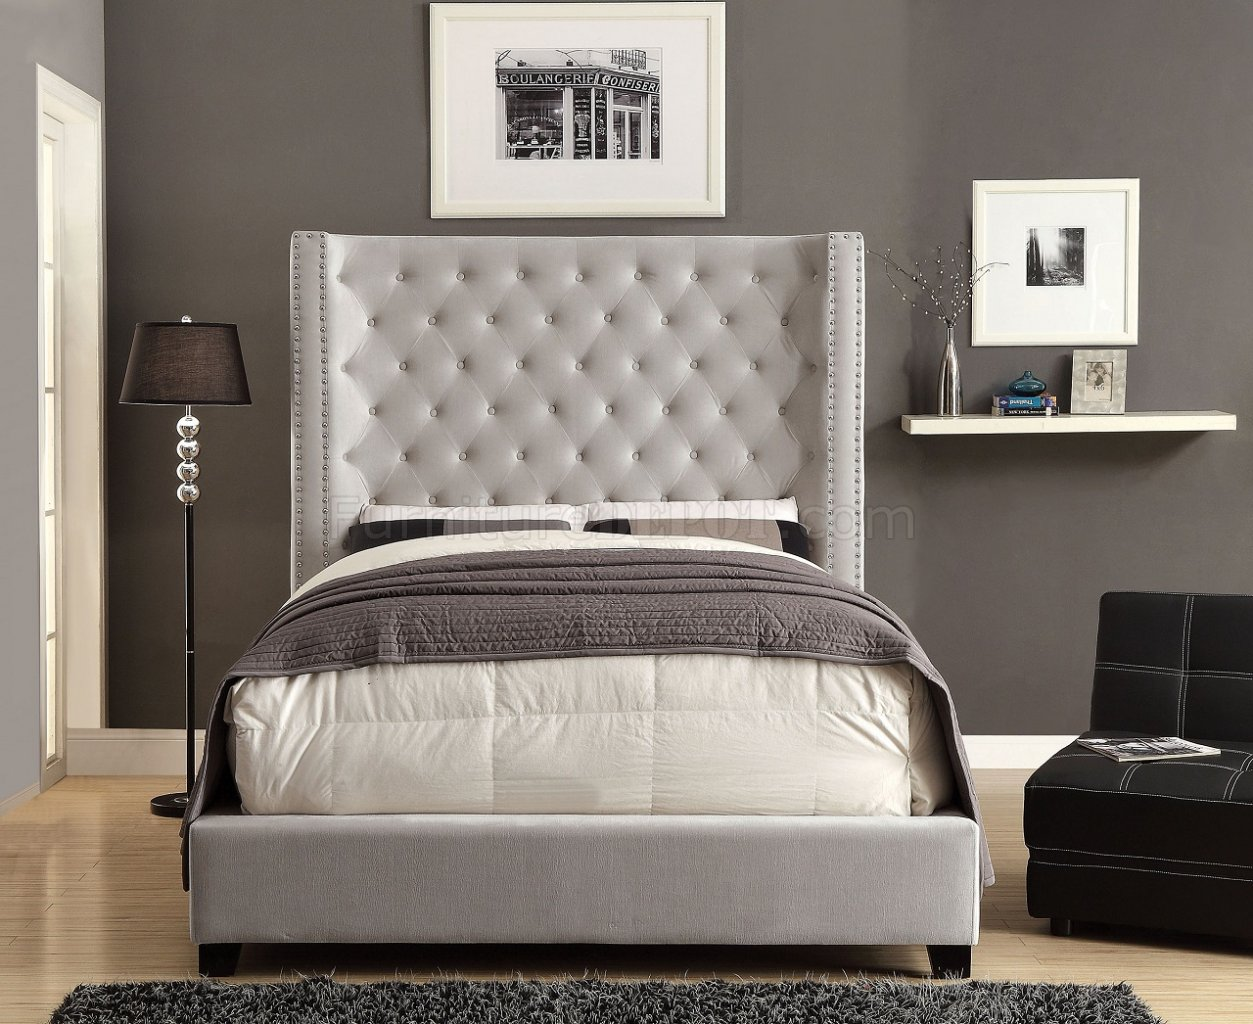 Mirabelle CM7679IV Upholstered Bed in Ivory Flannelette